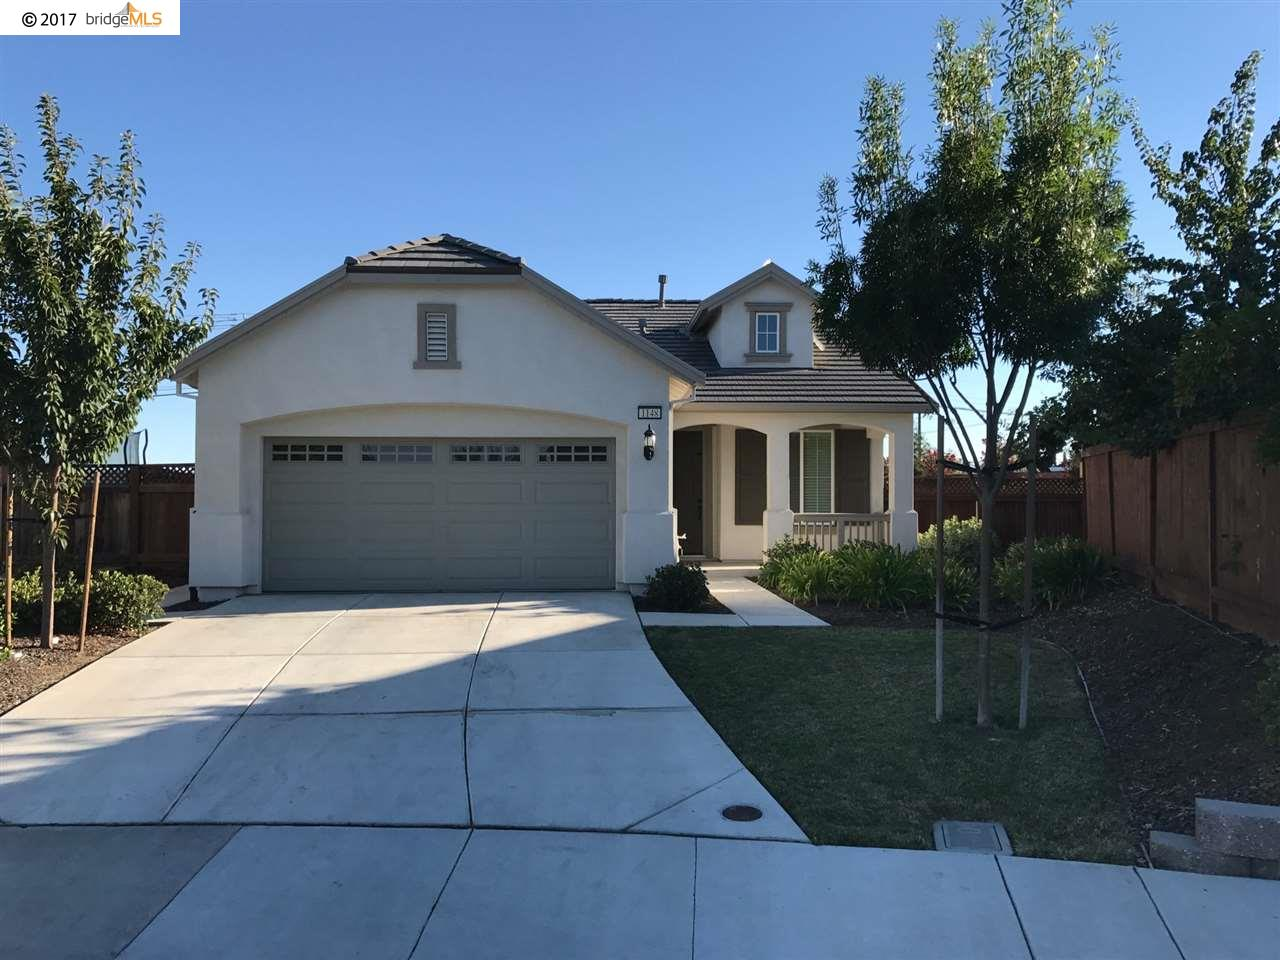 Single Family Home for Rent at 1148 Europena Drive Brentwood, California 94513 United States